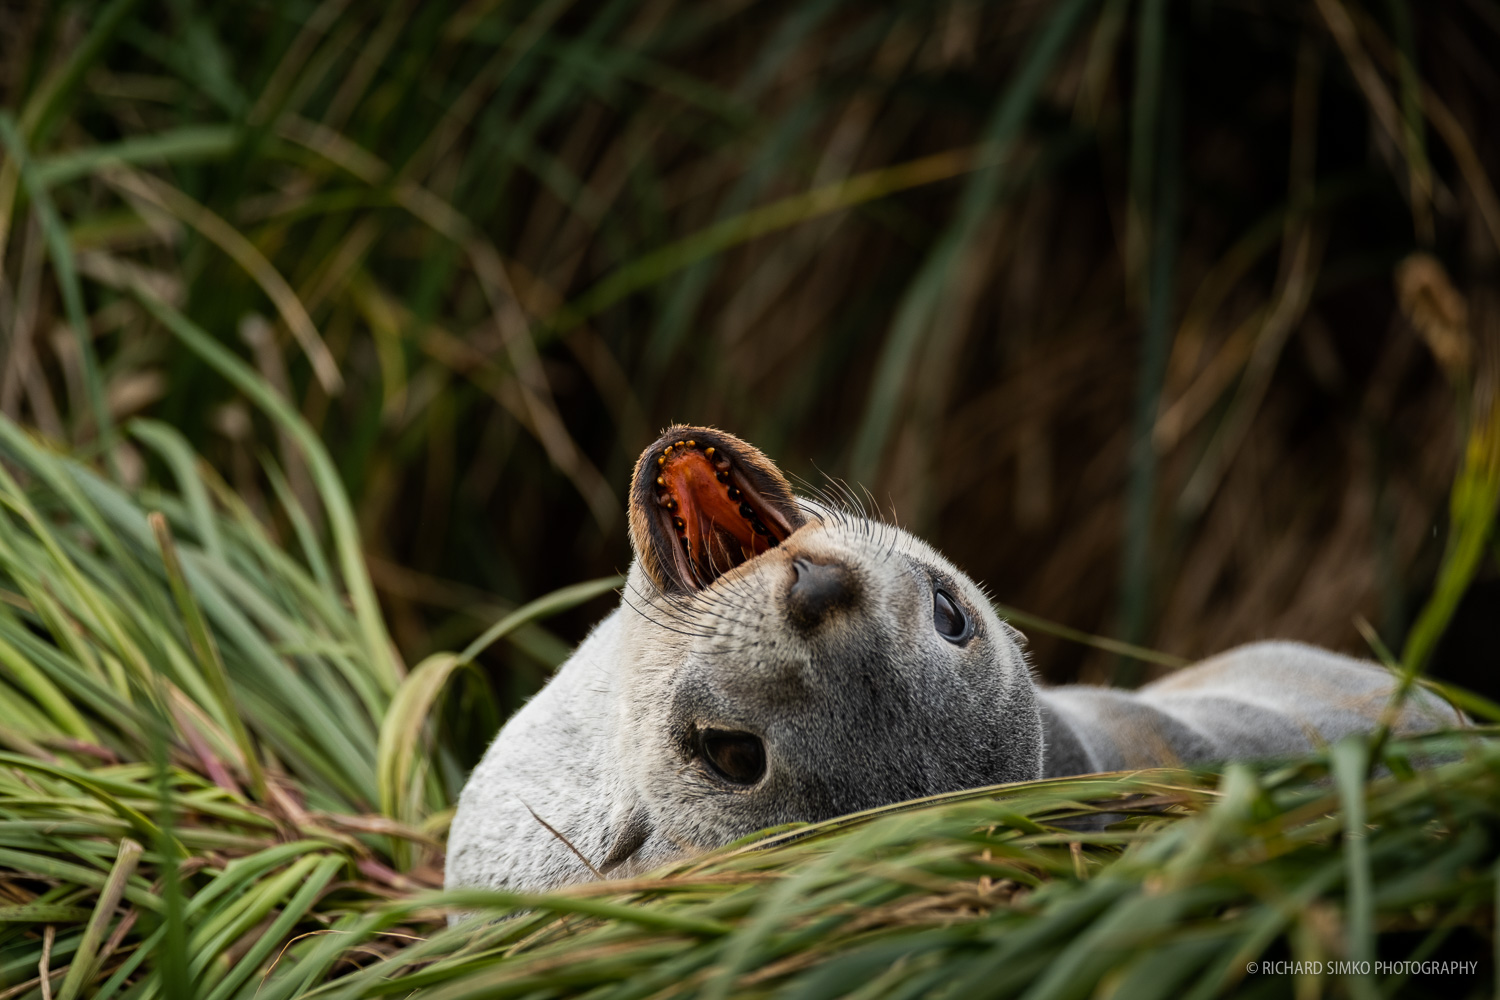 Fur seals were once almost extinct. But they number grew and in such and extent that they are taking over certain places from other wildlife. This is a pup at Prion Island resting in tussac grass which is primarily a location for nesting albatrosses.